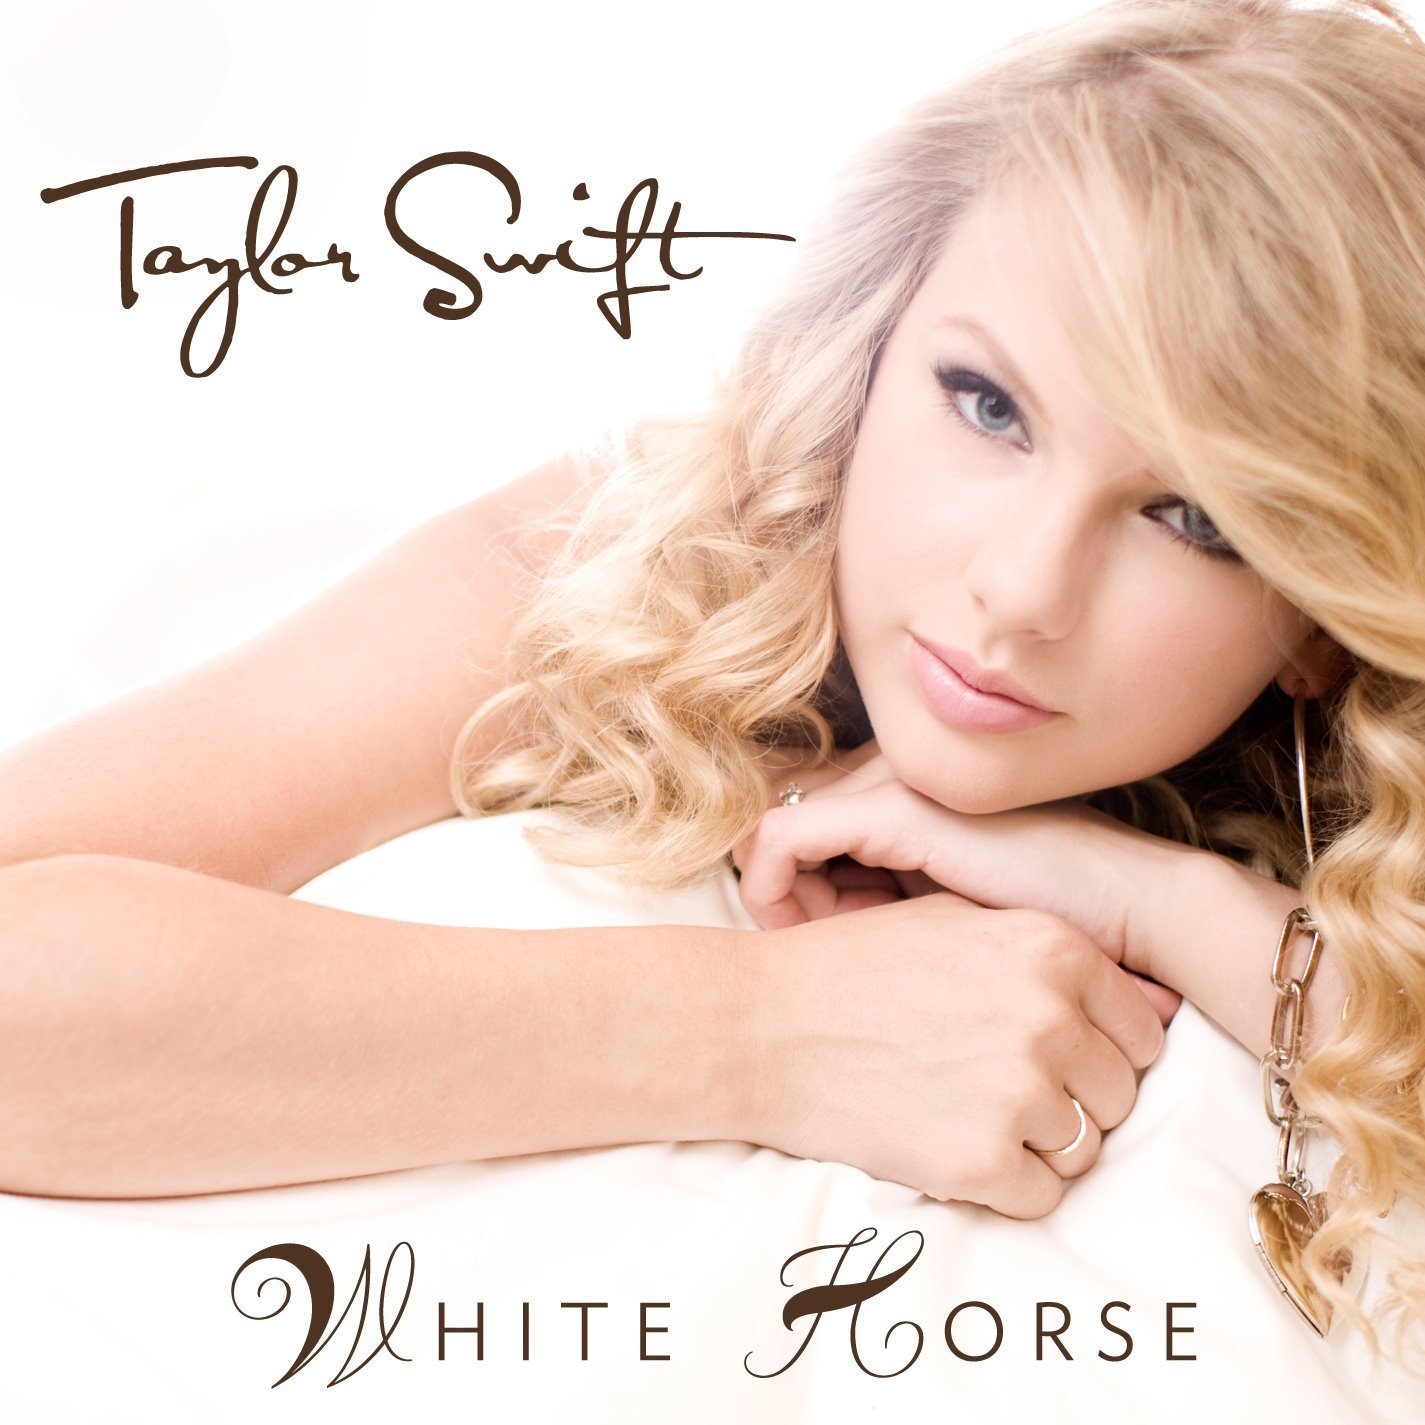 White Horse [Official Single Cover] - Fearless (Taylor Swift album) Photo (14877612) - Fanpop